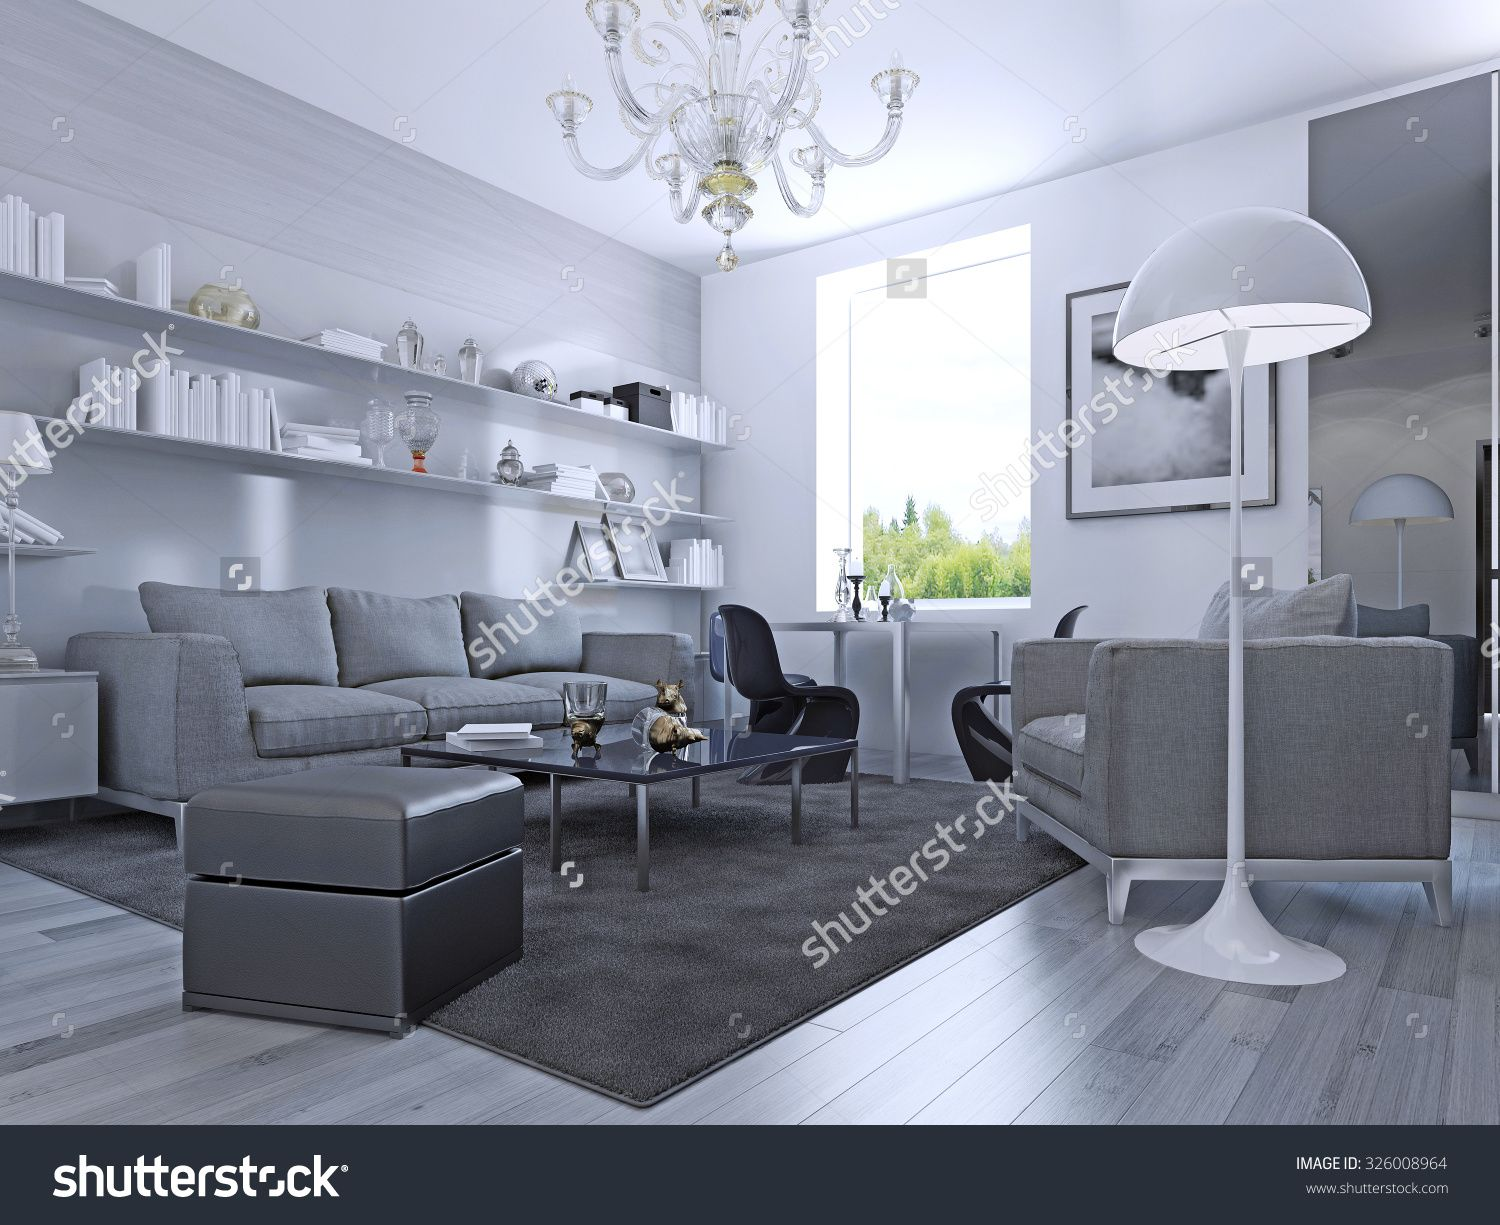 Living Room Laminate Flooring Ideas Style Living Room In Modern Style With White Walls And Awesome Pale Grey .